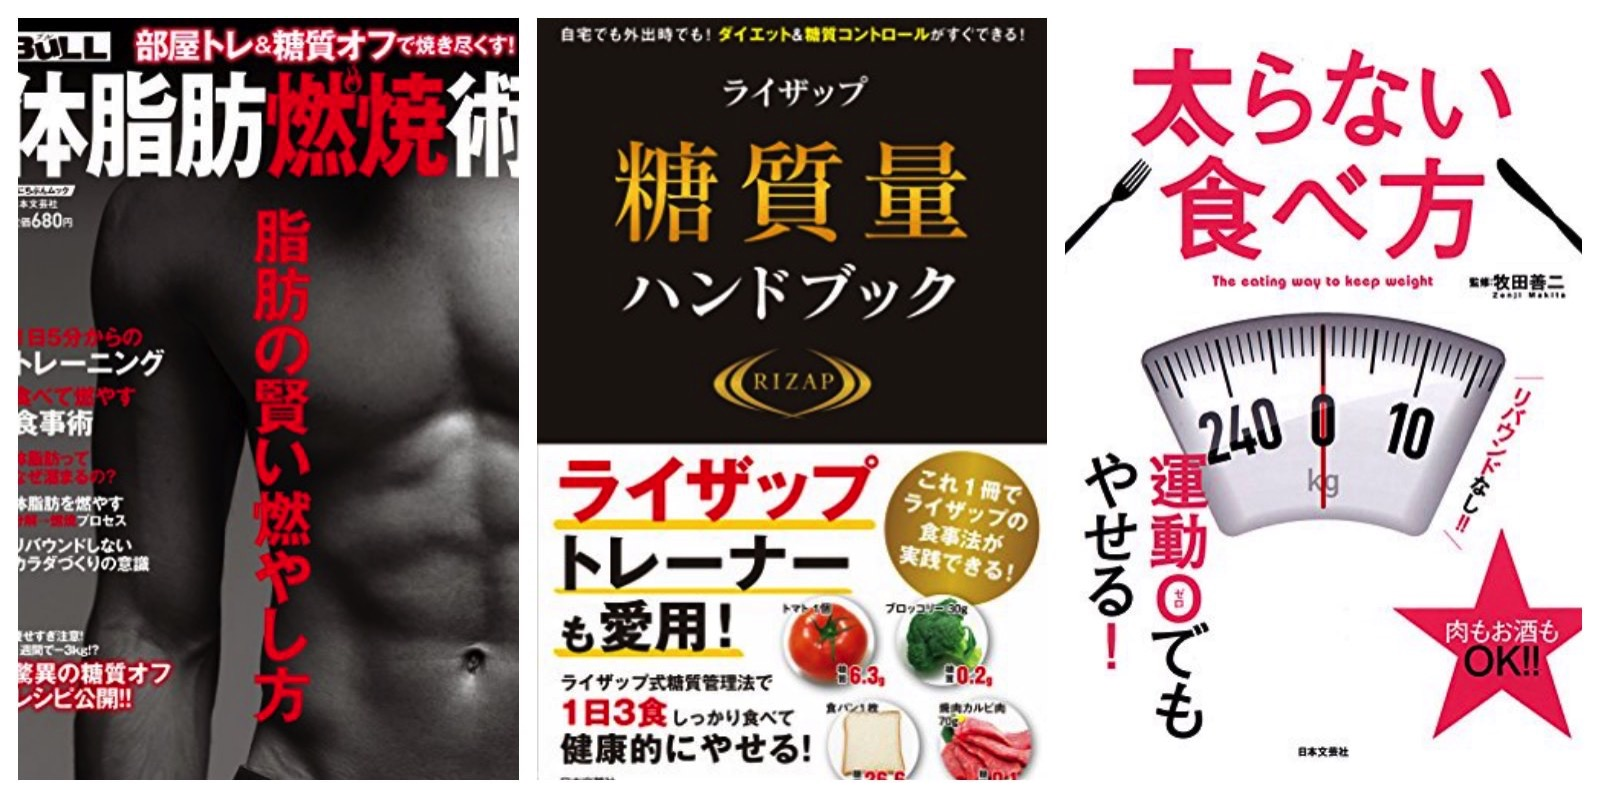 Health-and-diet-books-on-sale.jpg